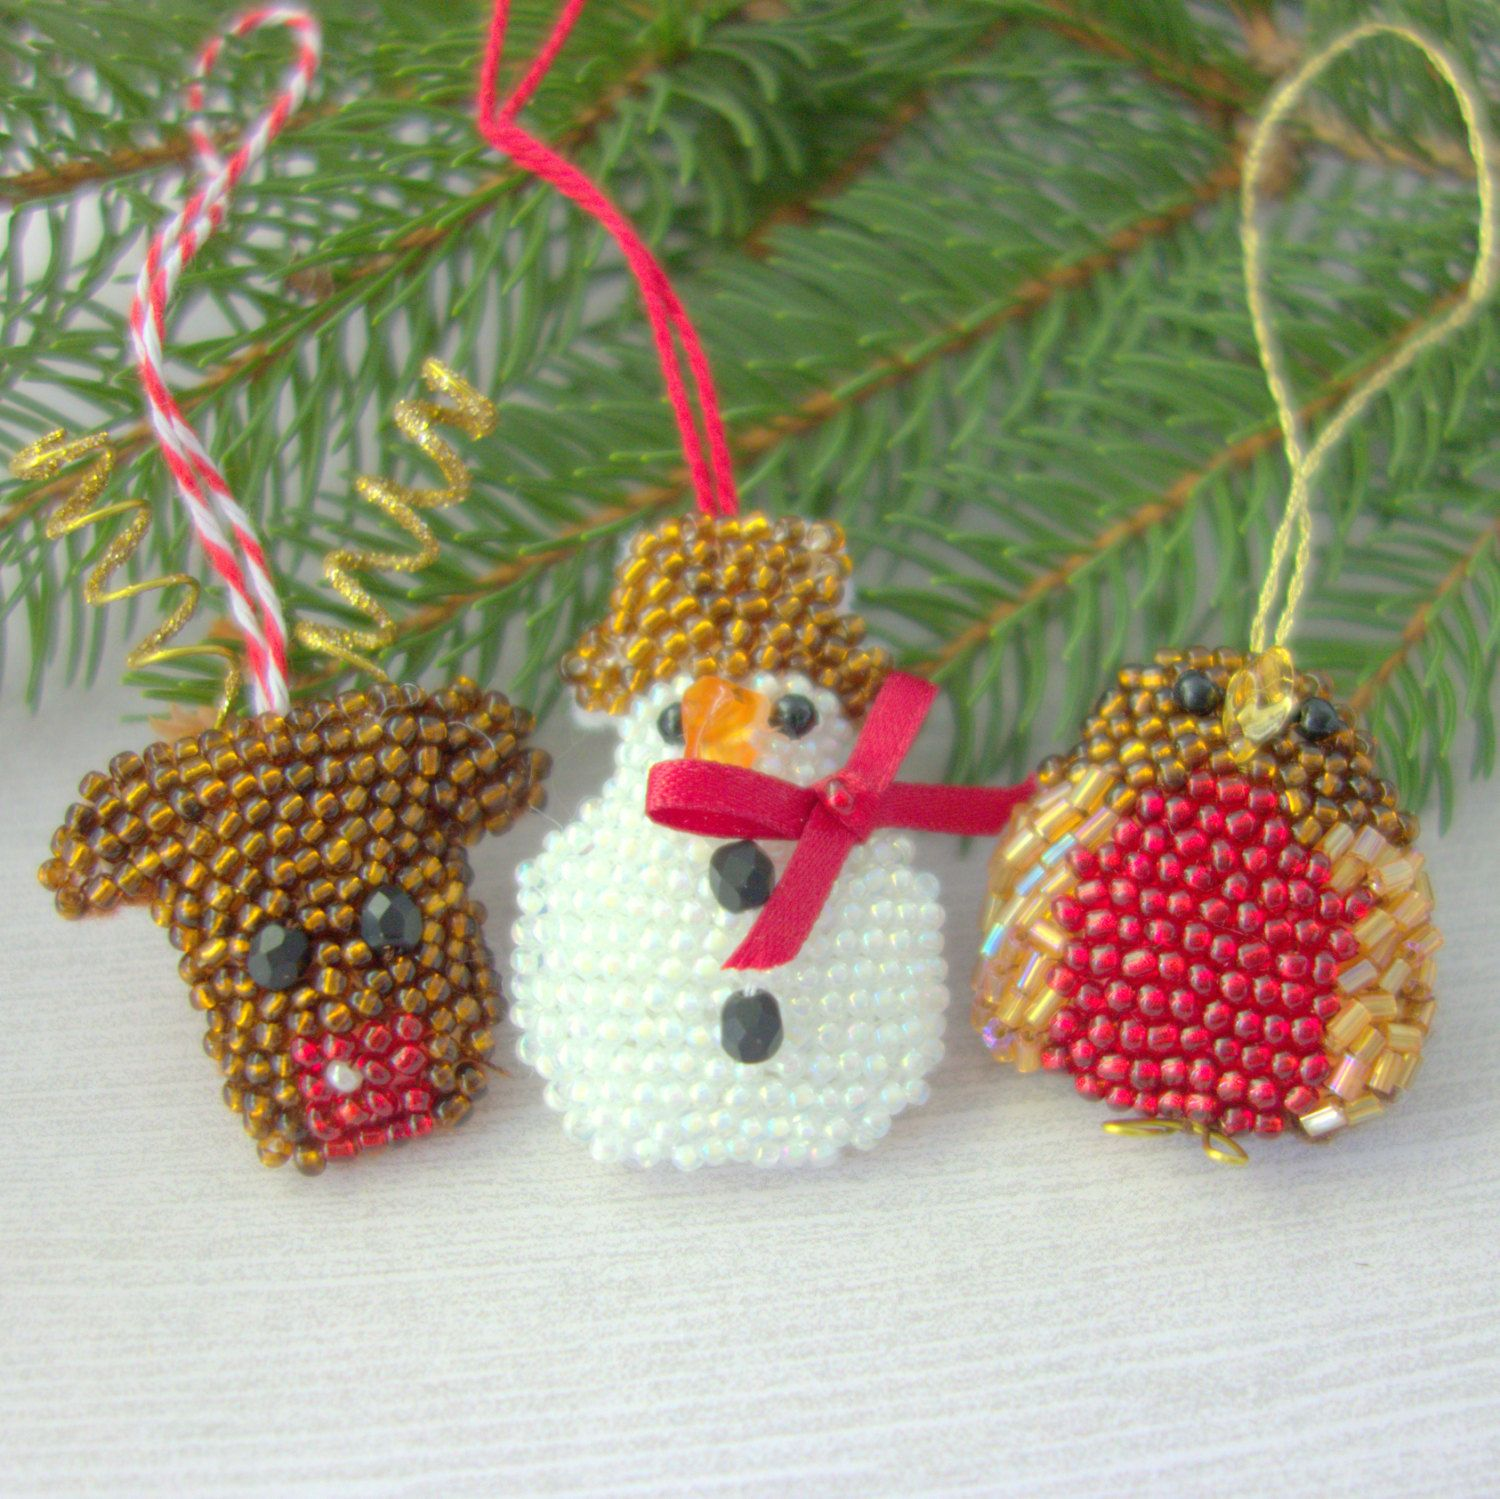 New baby ornaments - Cute Ornament Collection Snowman Robin Reindeer Trio Of Beaded Holiday Ornaments For The Tree New Baby